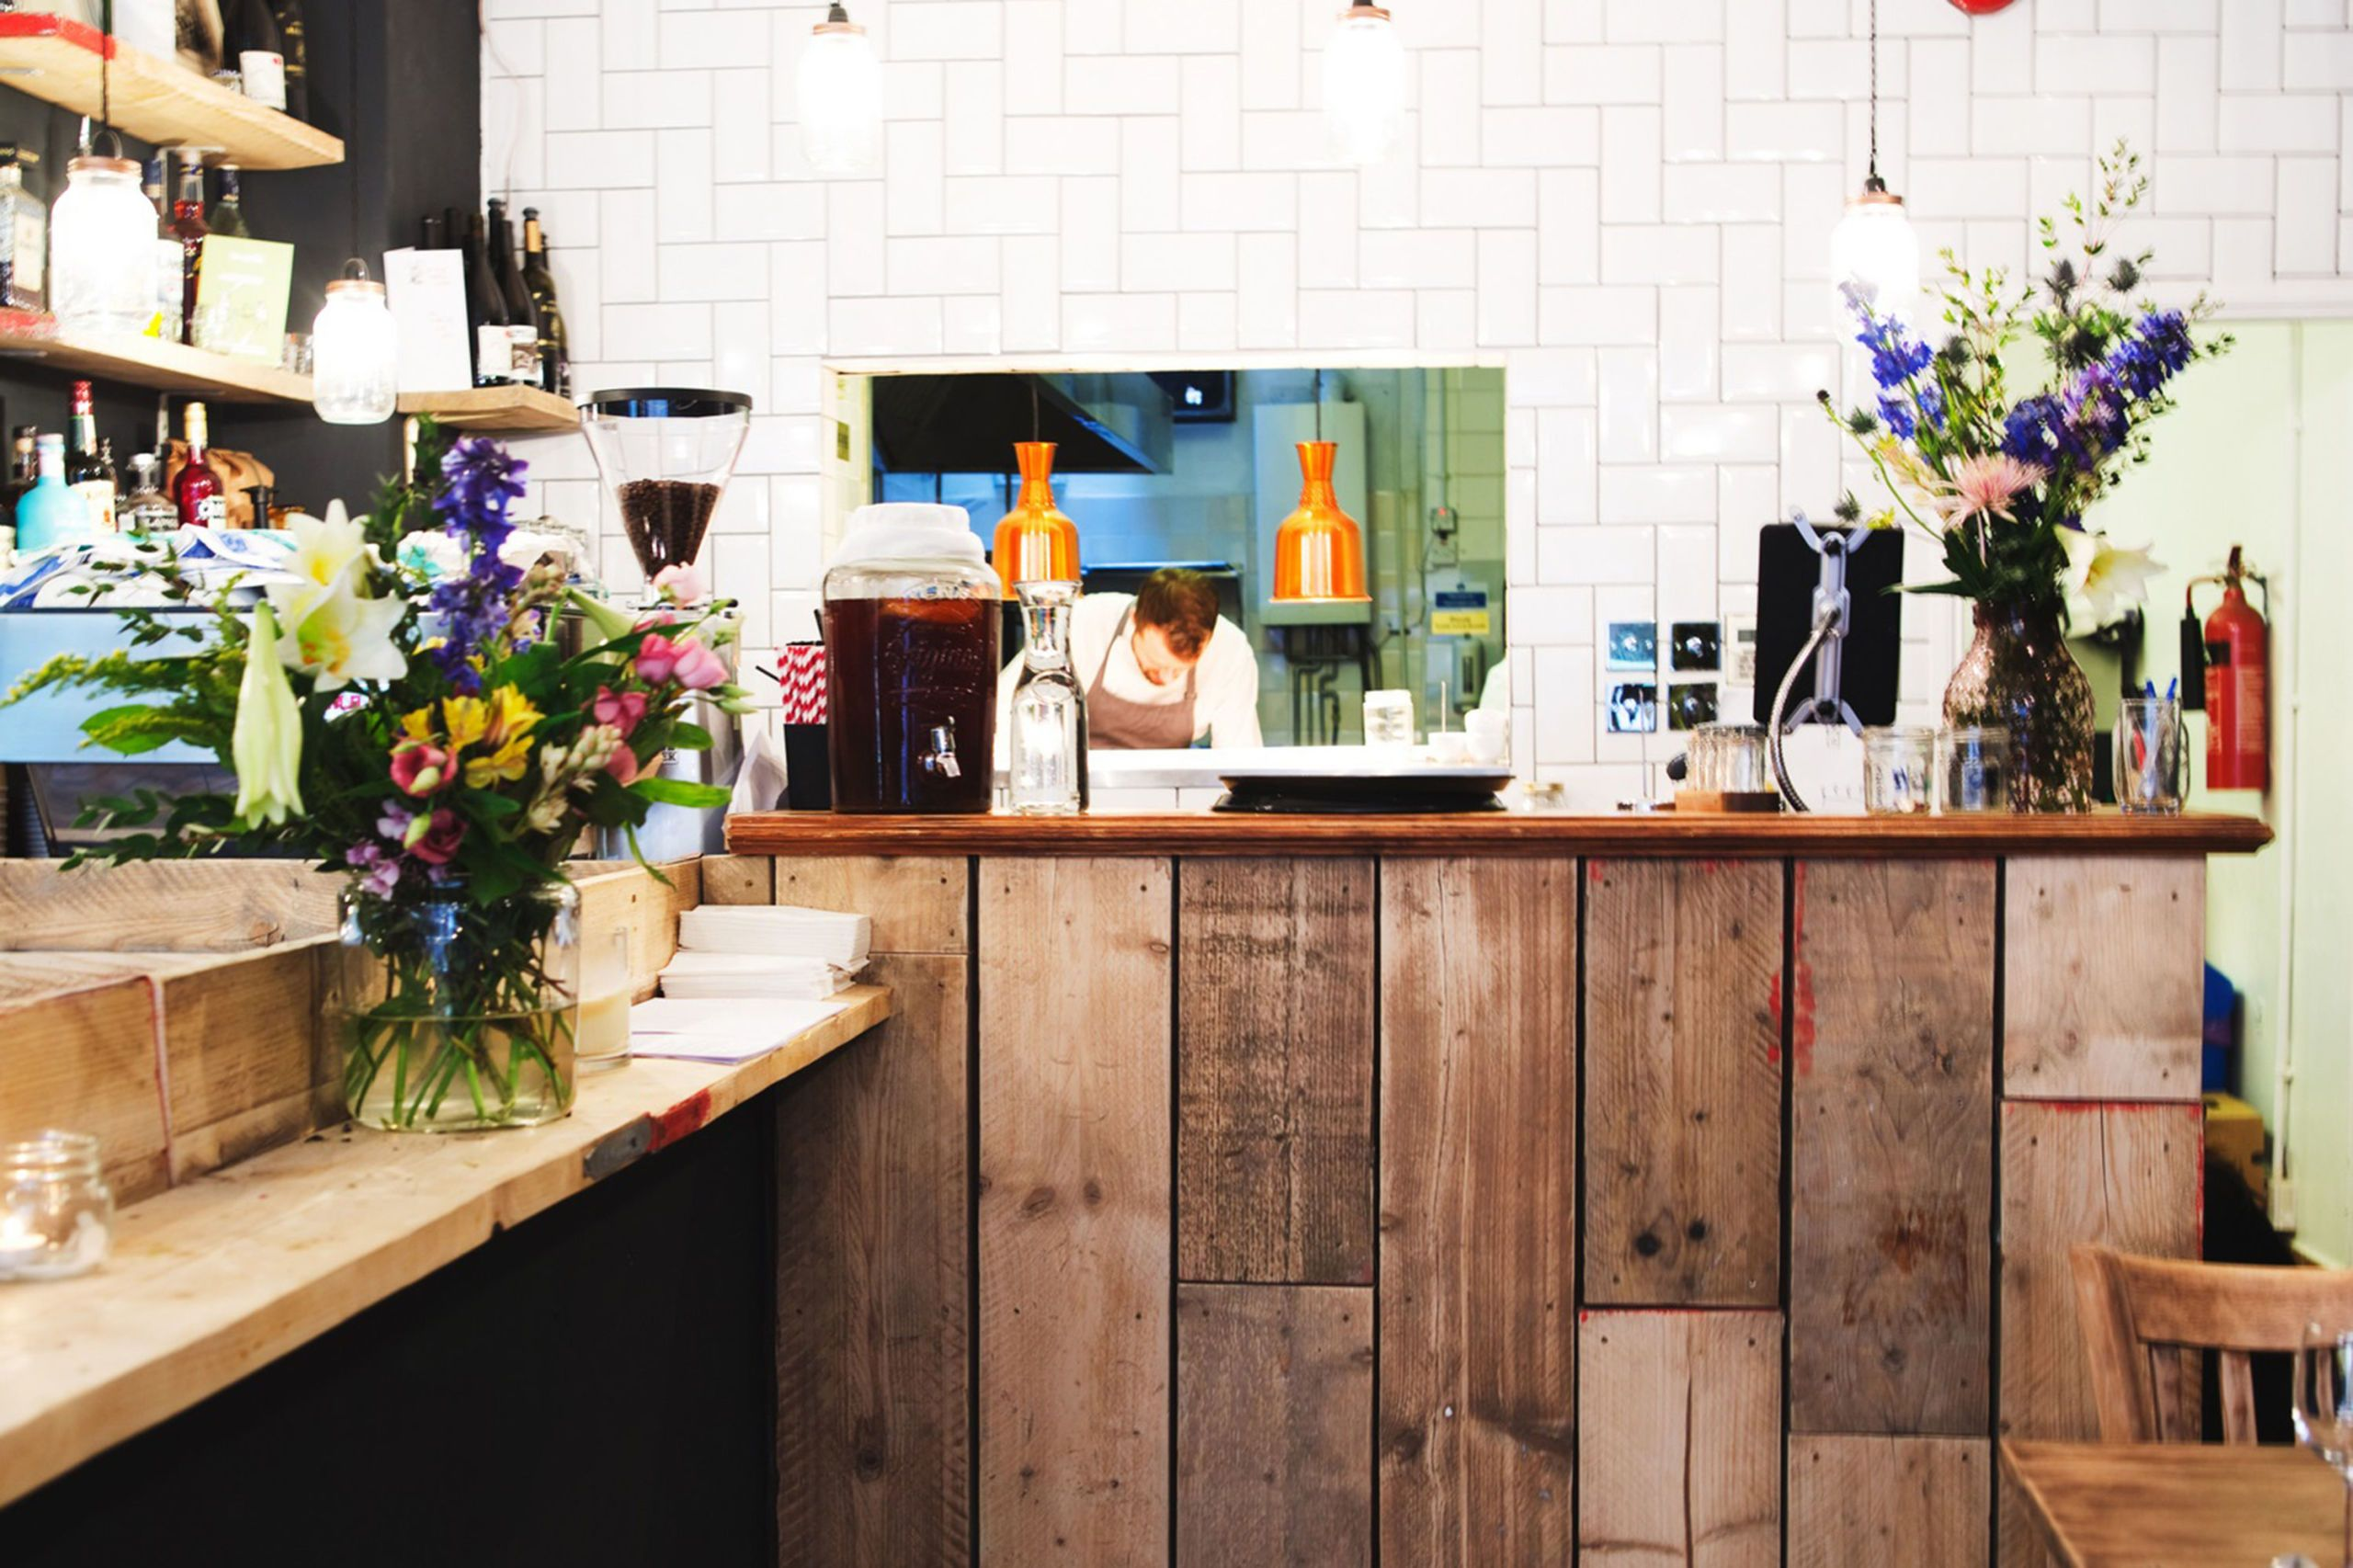 This Bijoux Eatery Focuses On Ingredients Sourced From Local Suppliers